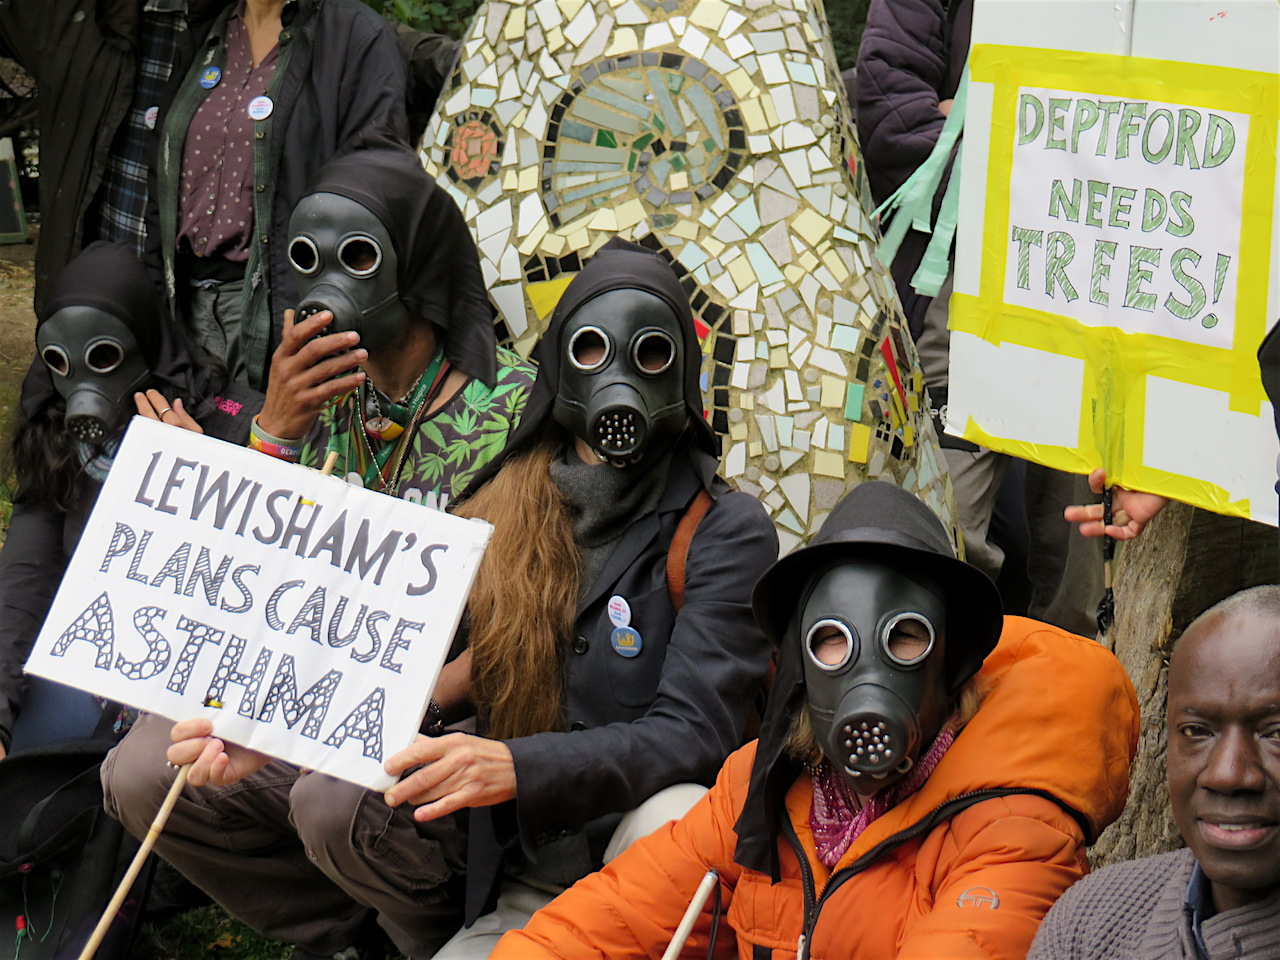 Save Reginald Save Tidemill campaigners photographed wearing gas masks to highlight the environmental costs of the proposed re-development of the old Tidemill school site, including the Old Tidemill Wildlife Garden (Photo: Andy Worthington).